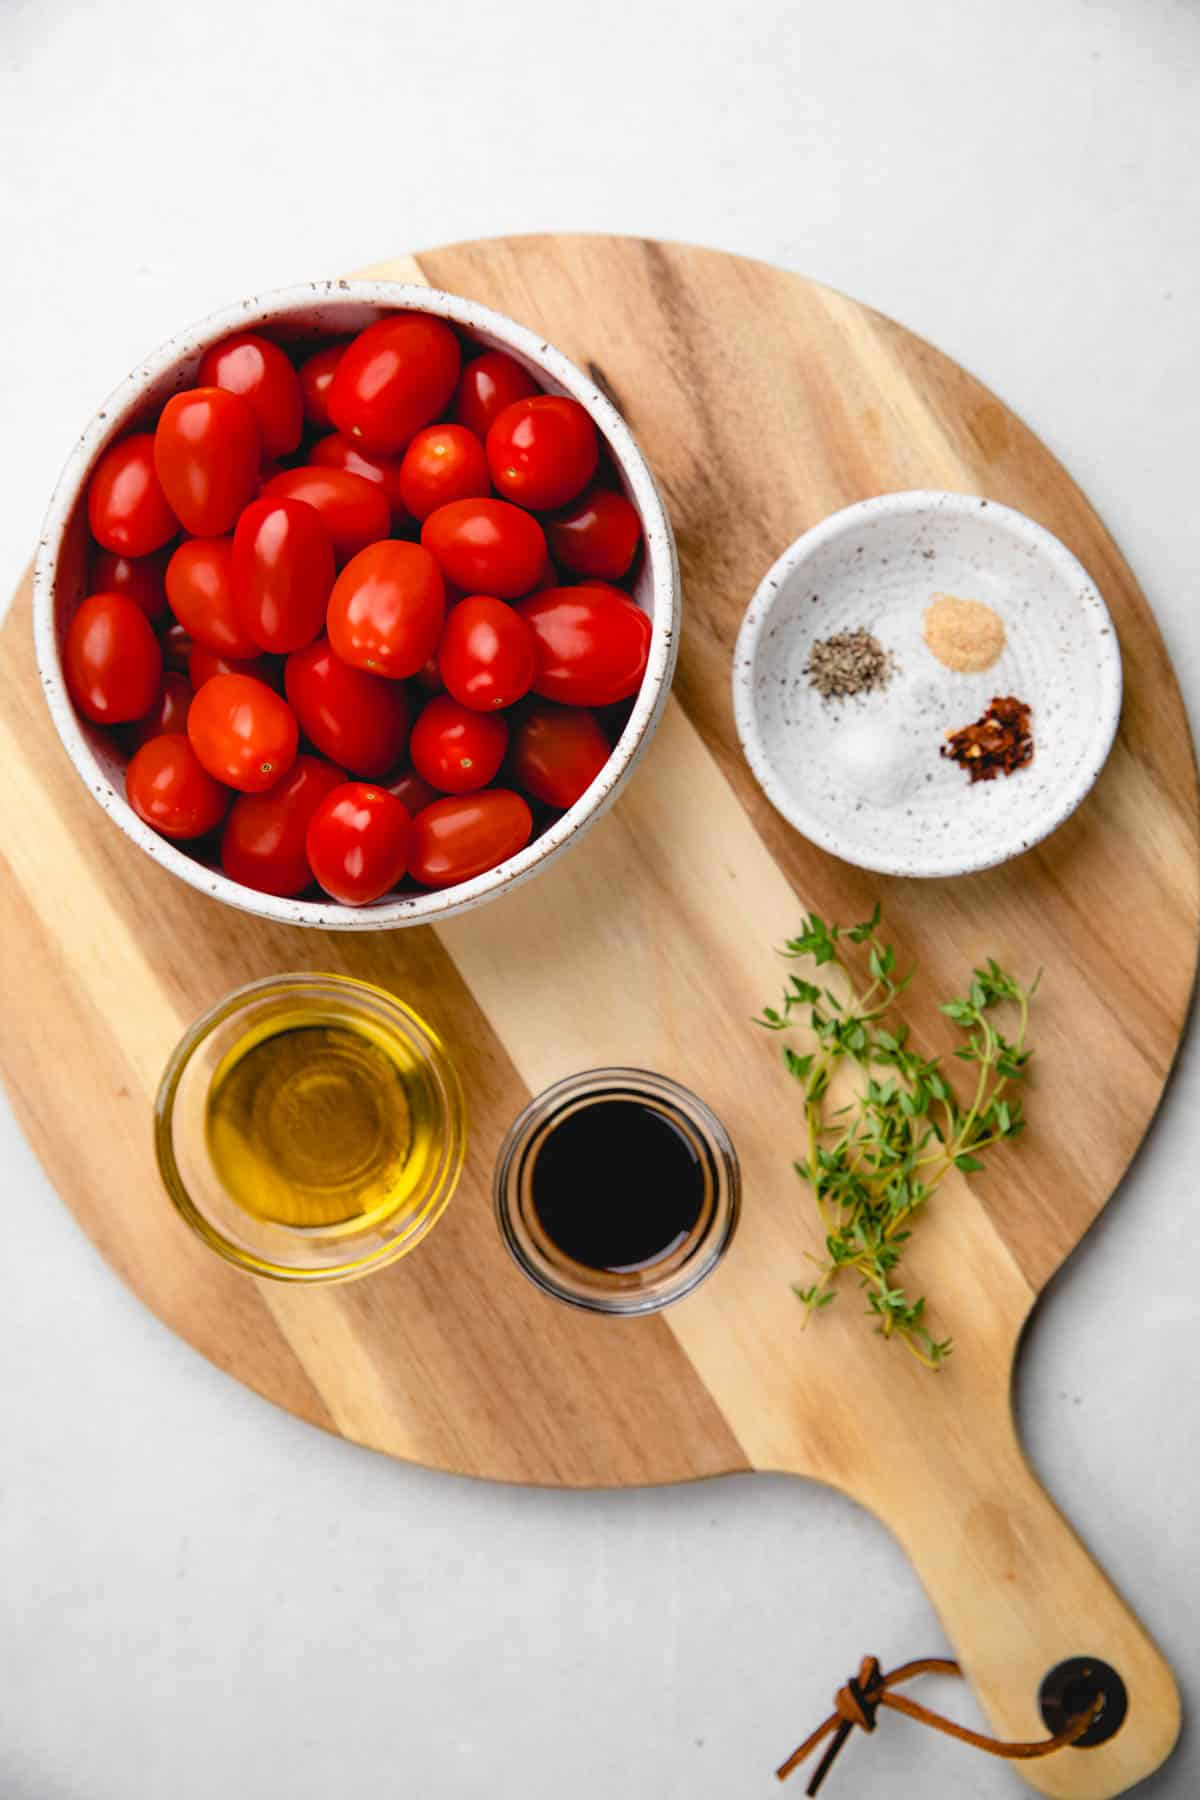 Ingredients for roasted cherry tomatoes.